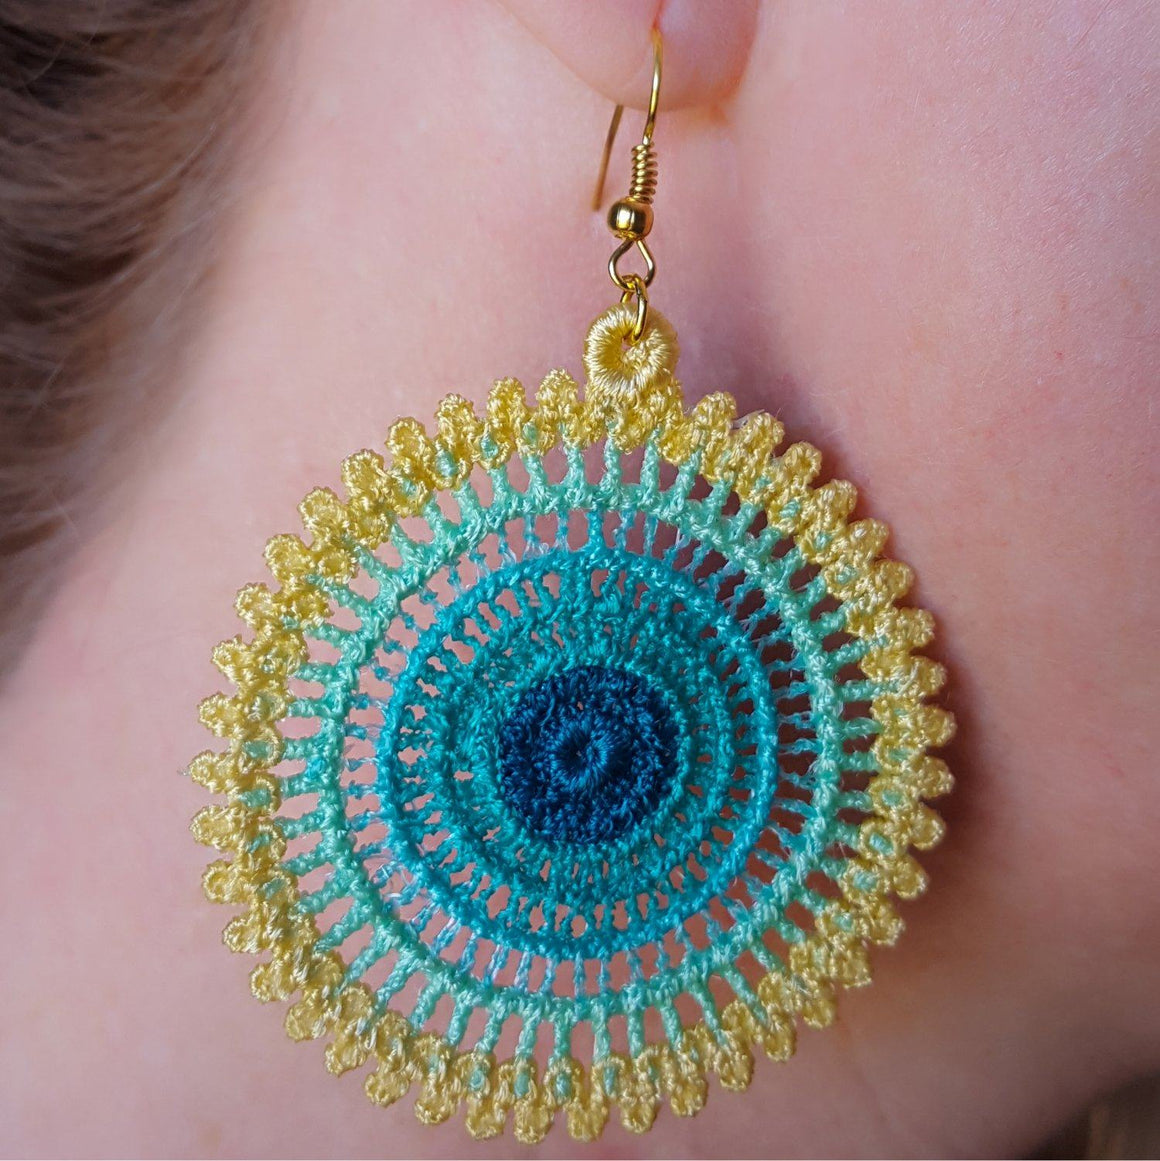 Ombre Freestanding Lace Earrings - a-stitch-a-half